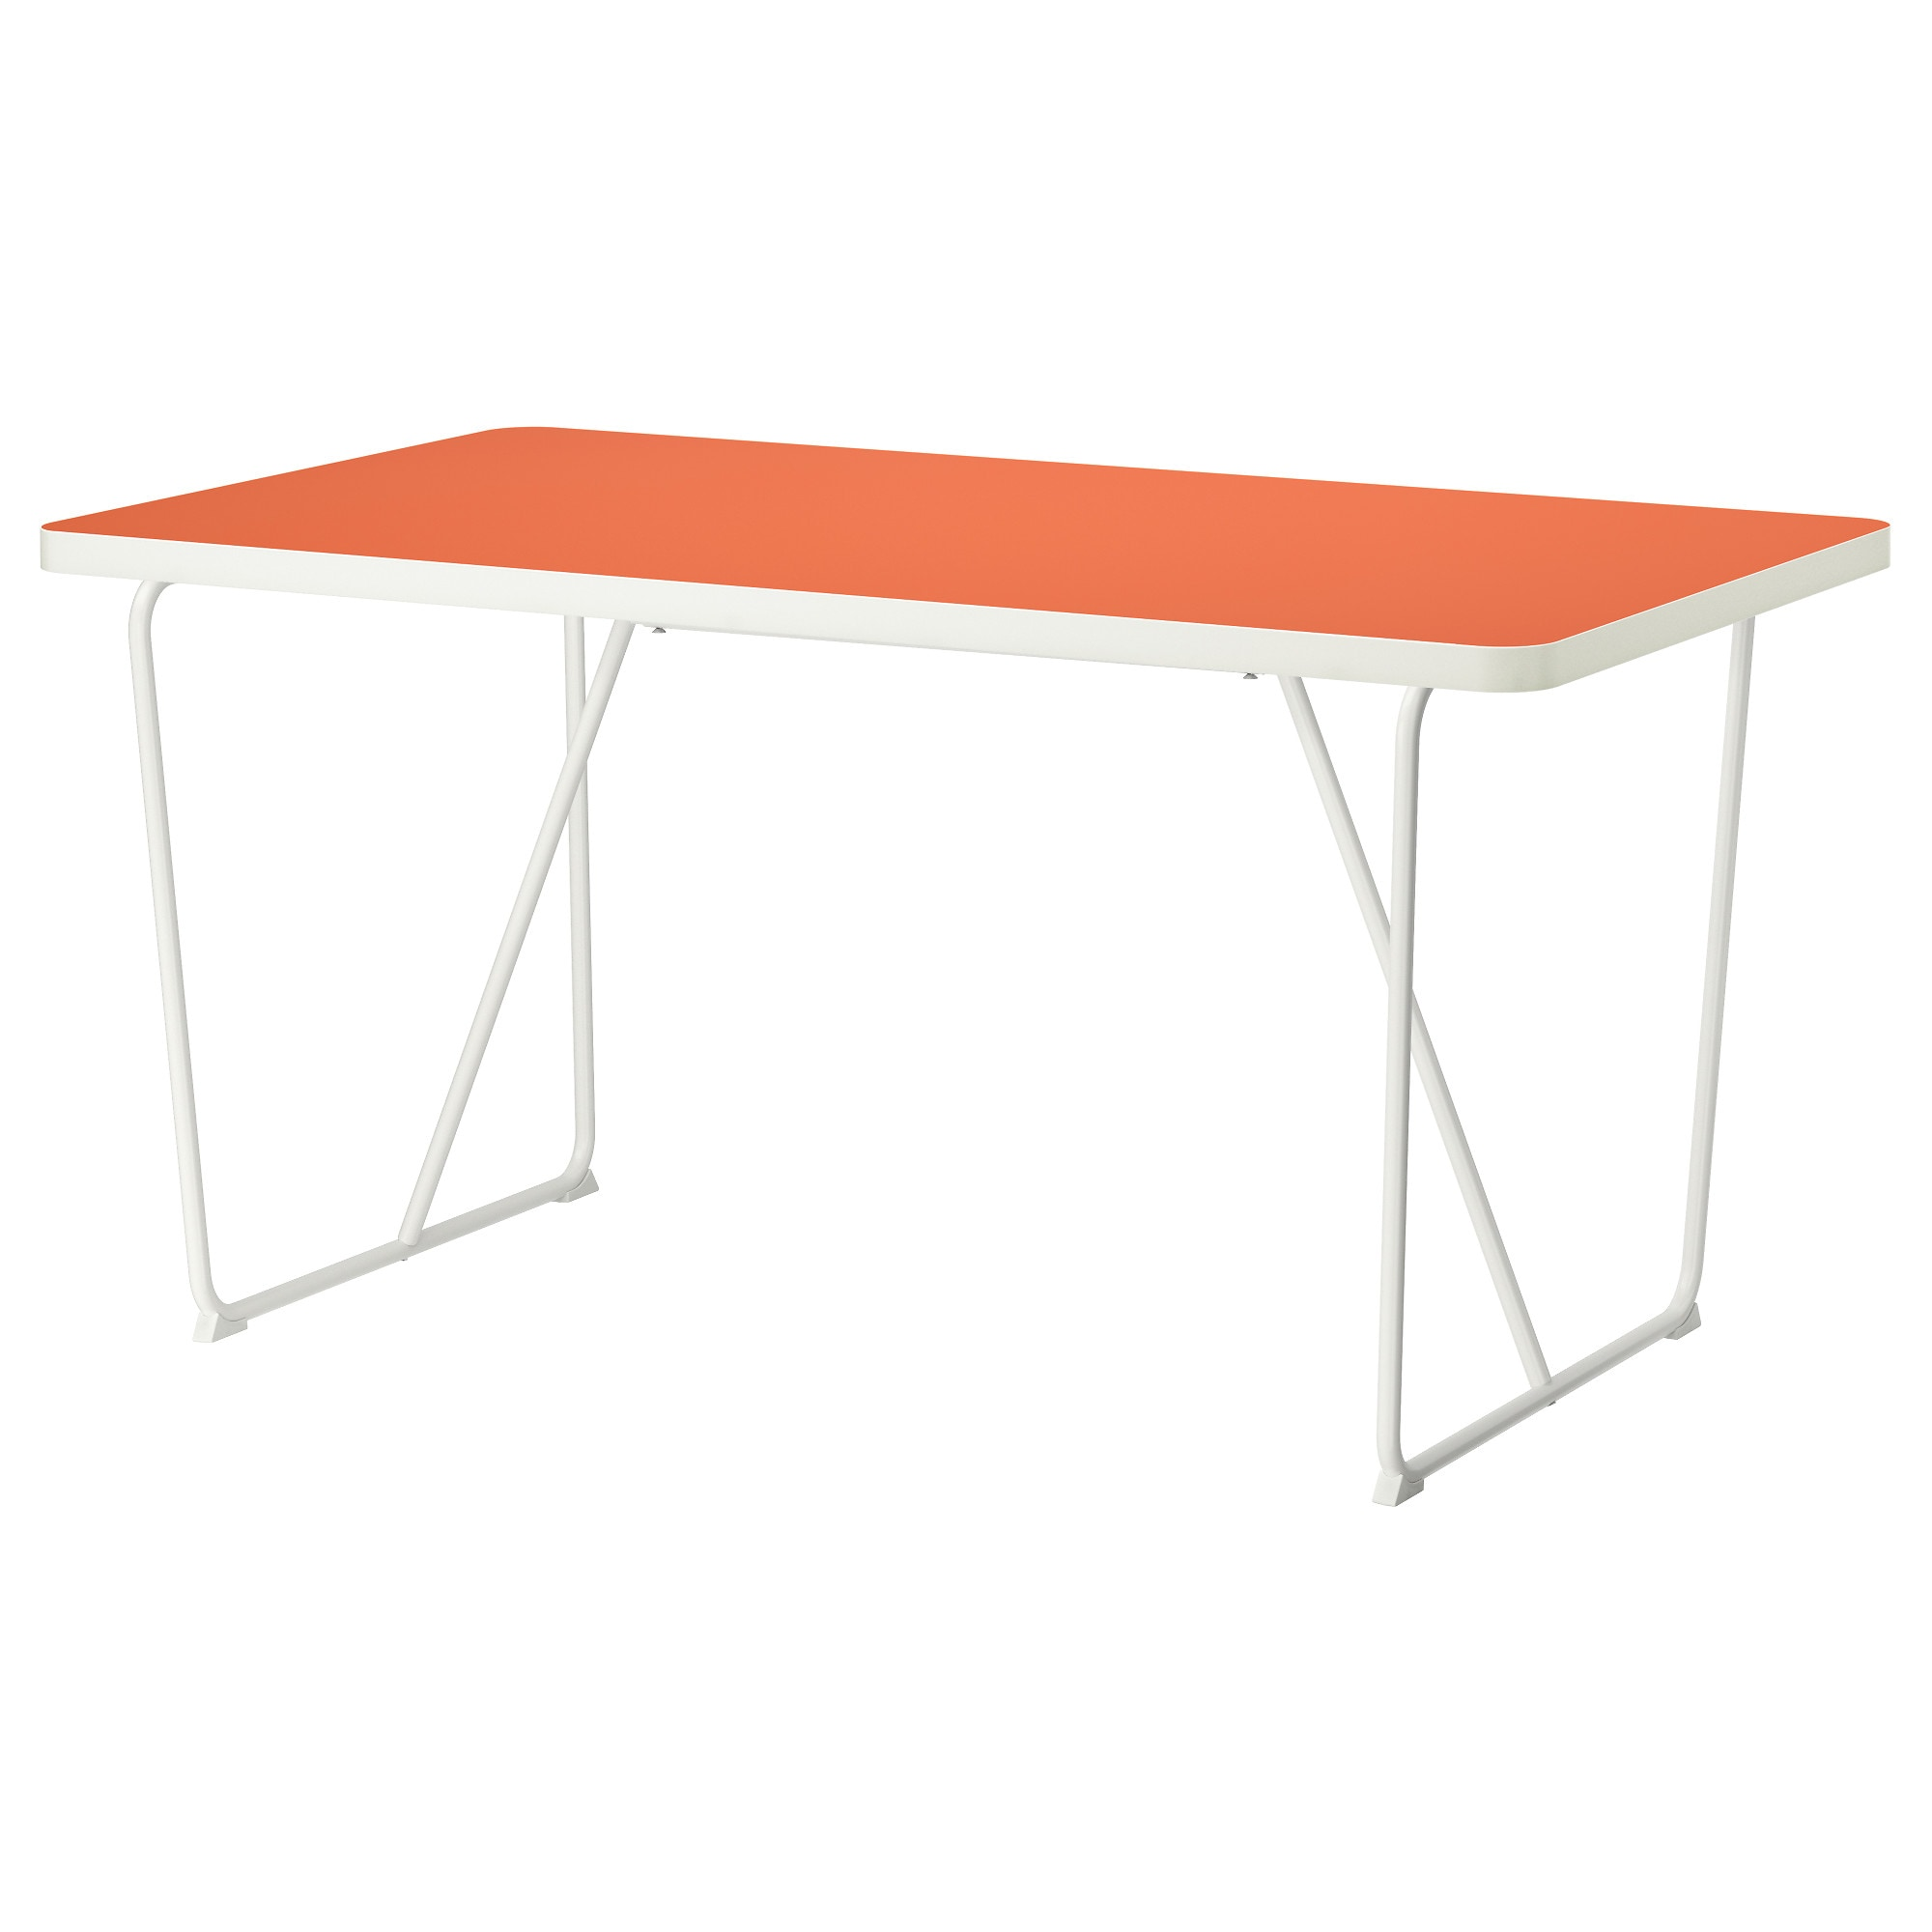 Rydeb ck table backaryd blanc le fait main for Ikea table rectangulaire